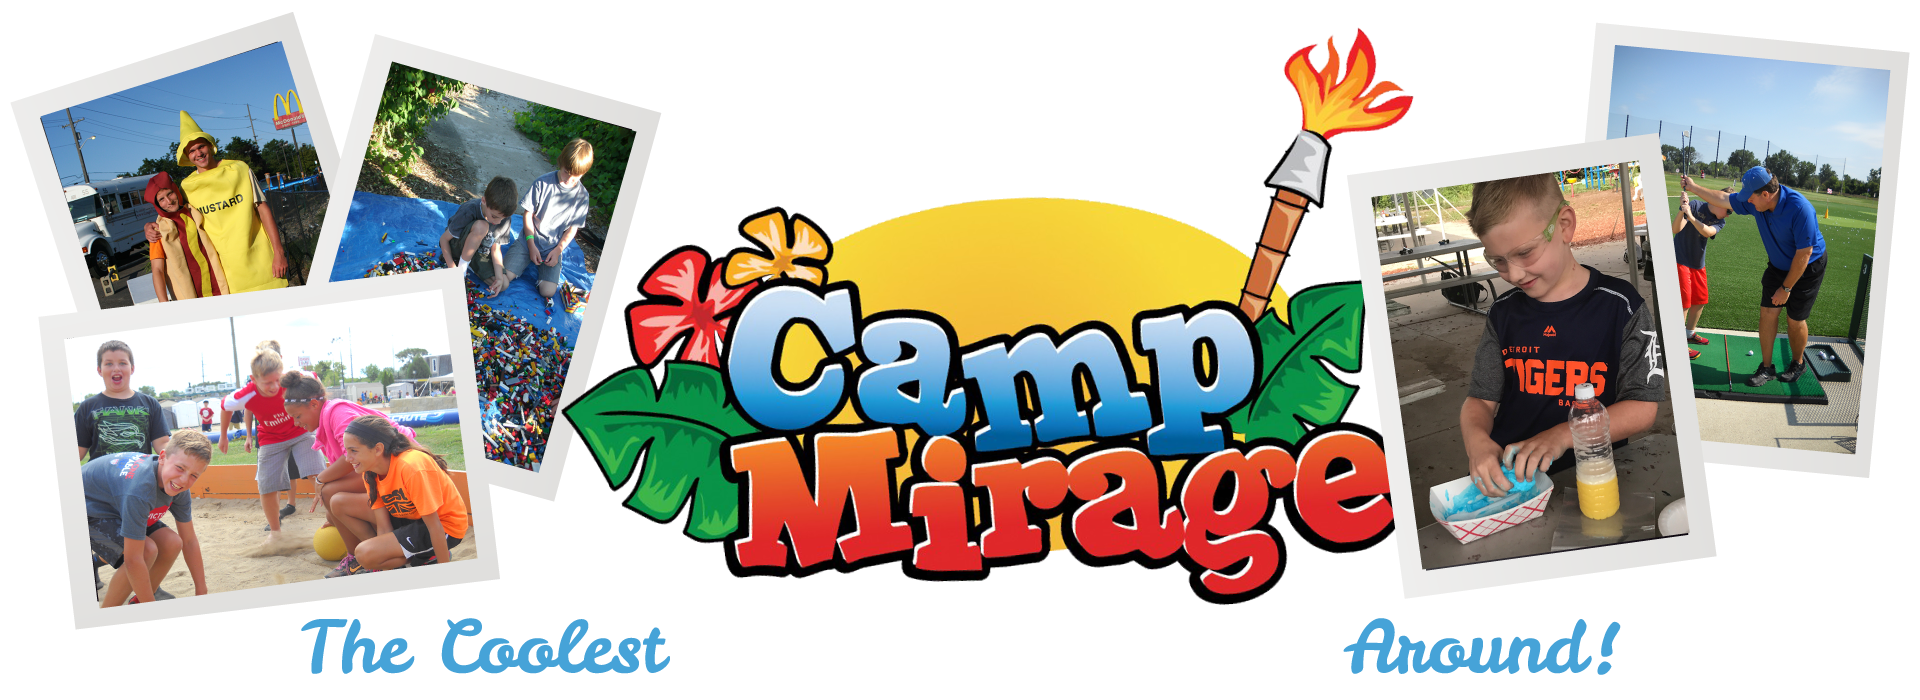 Games clipart camp game. Summer day guide to